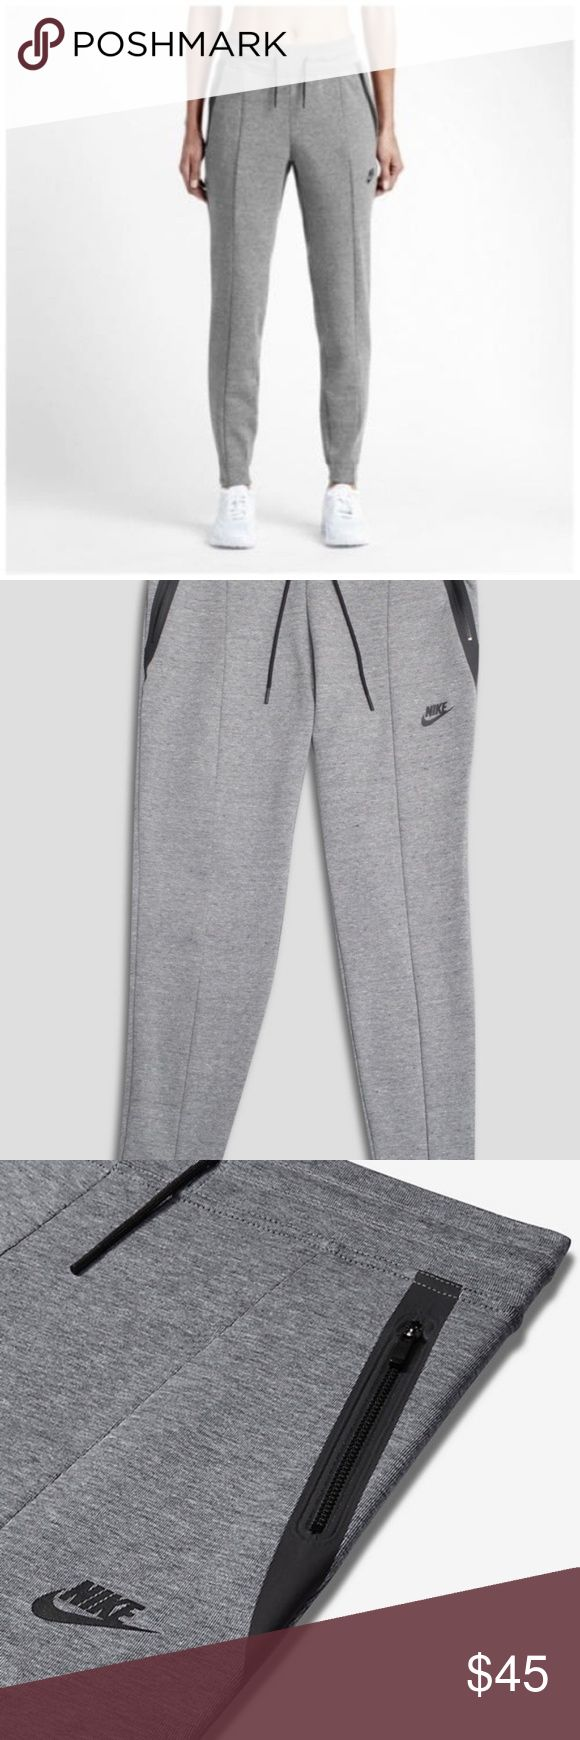 NIKE TECH FLEECE WOMEN'S PANTS SZ M 803575092 Nike